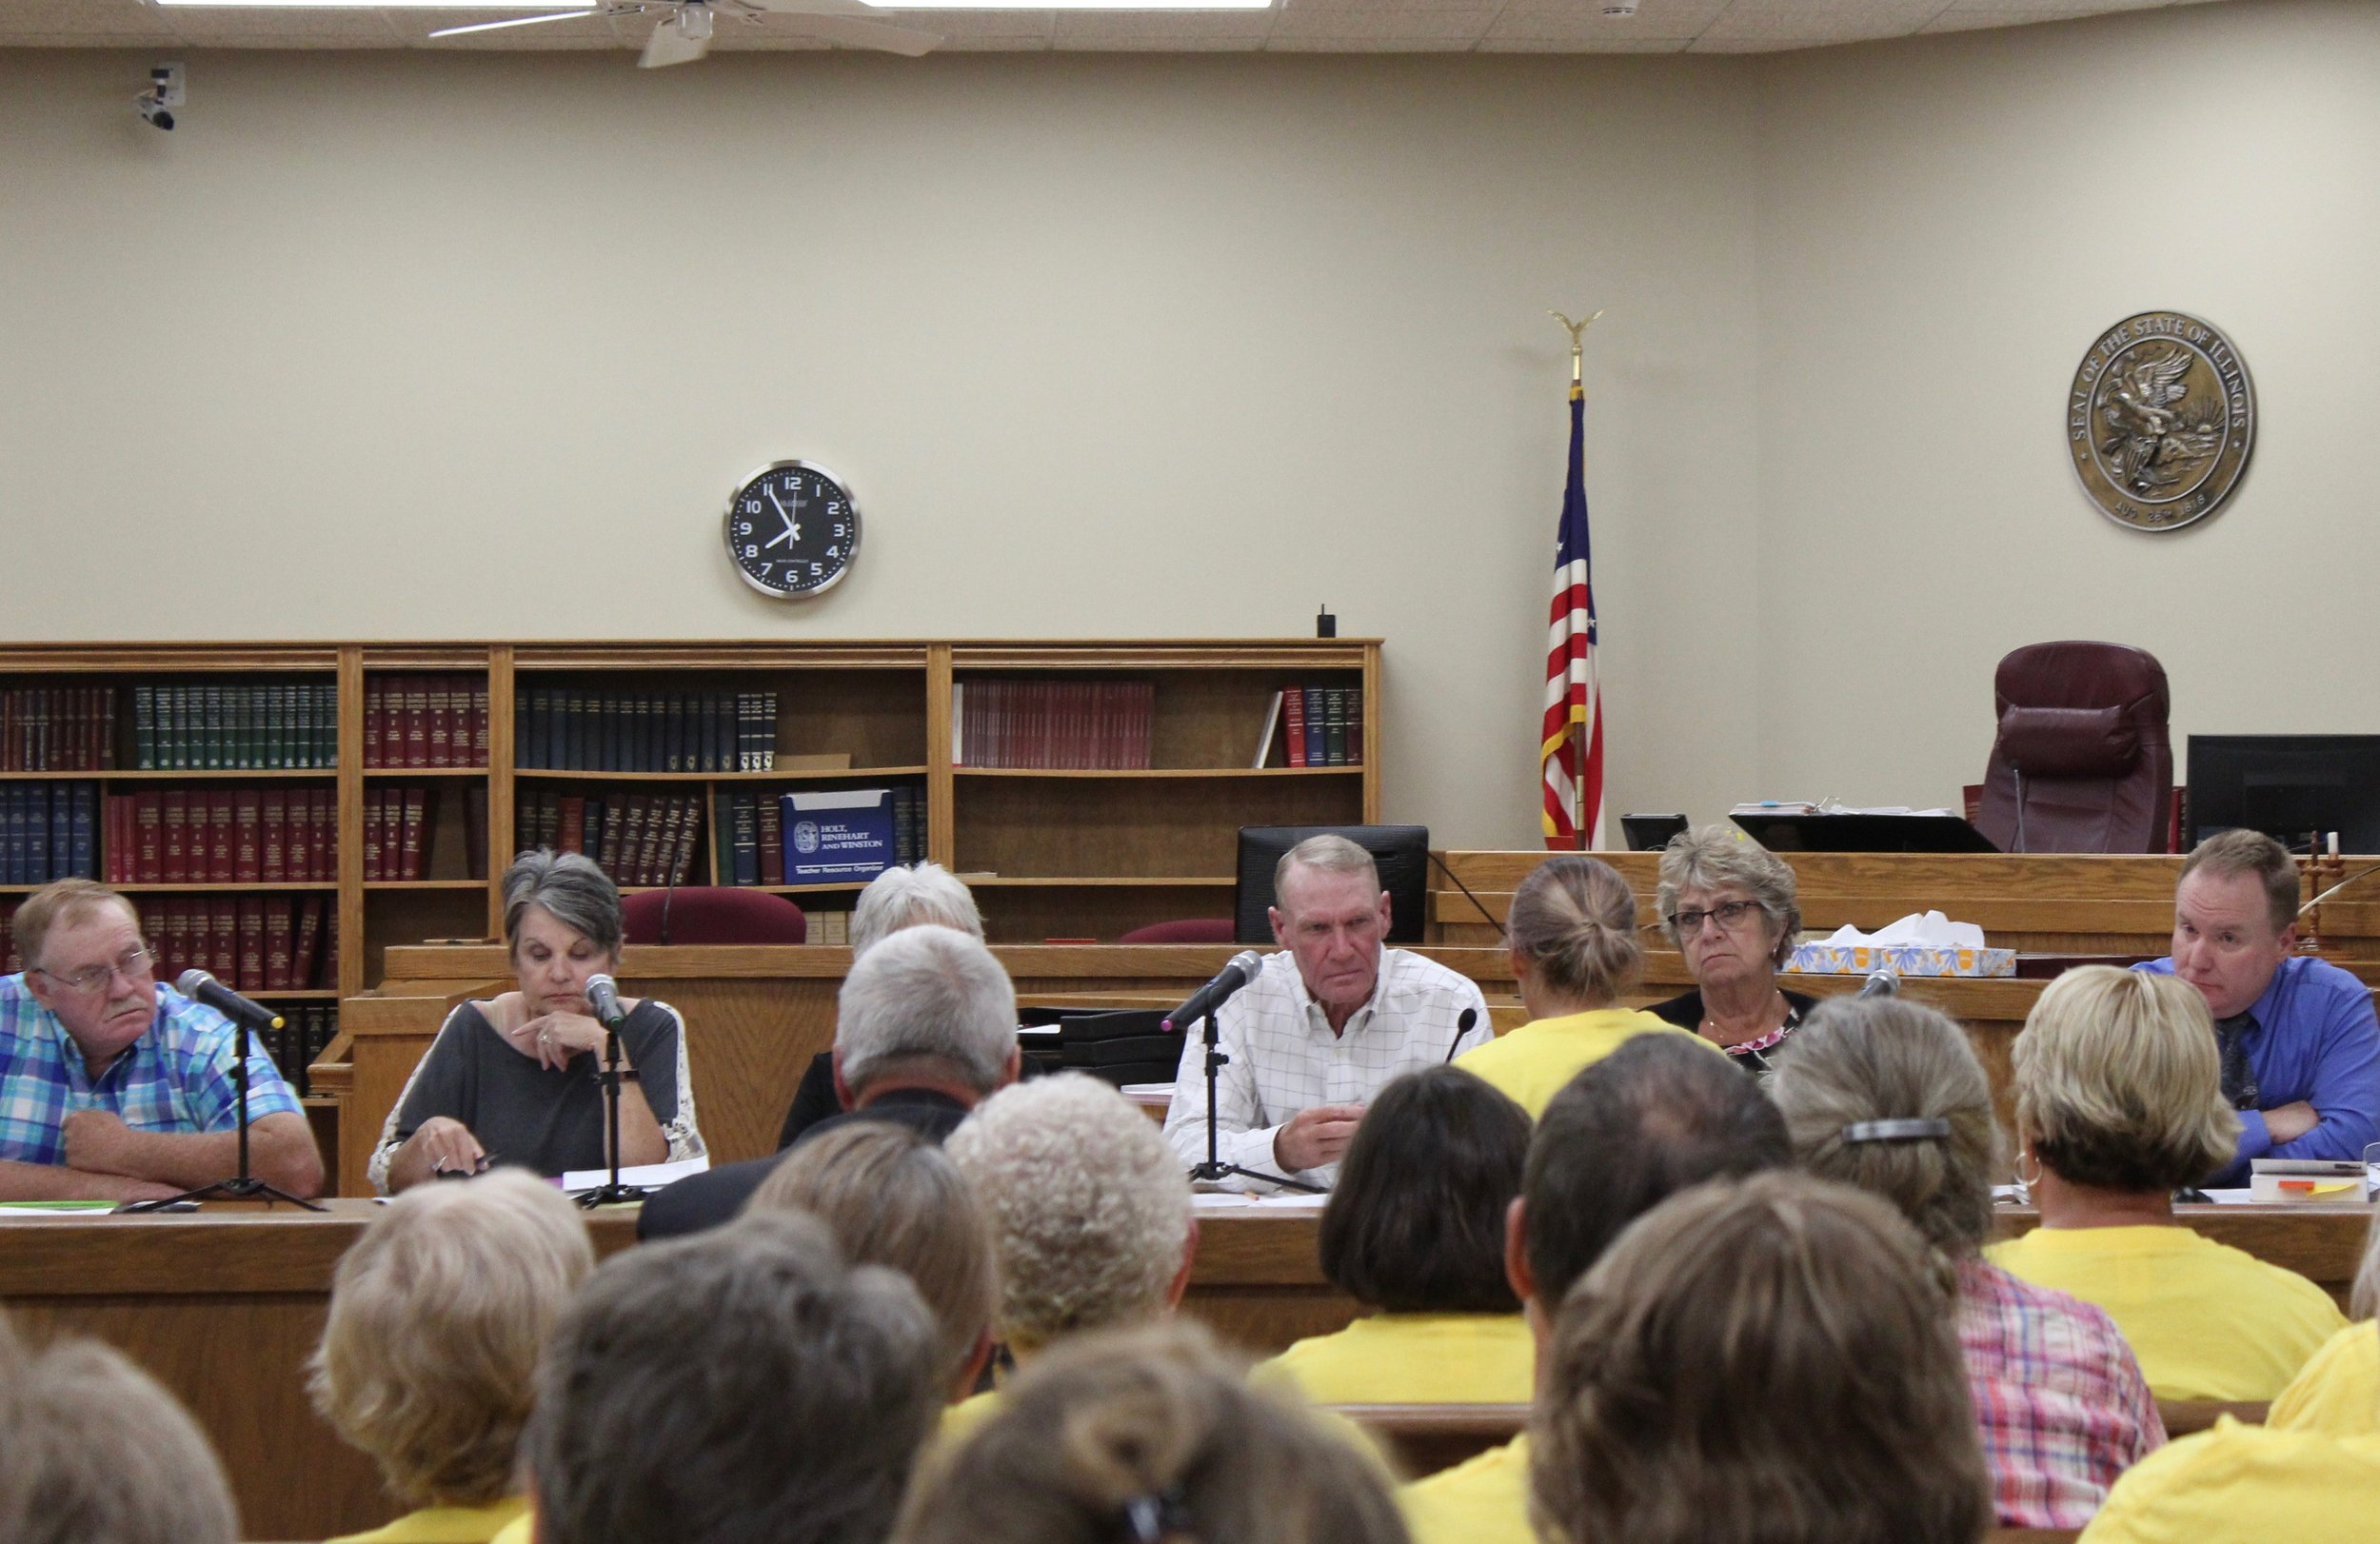 Andrea Rhoades testifies before the DeWitt County Board, with Chairman David Newberg at center. (One Illinois/Ted Cox)